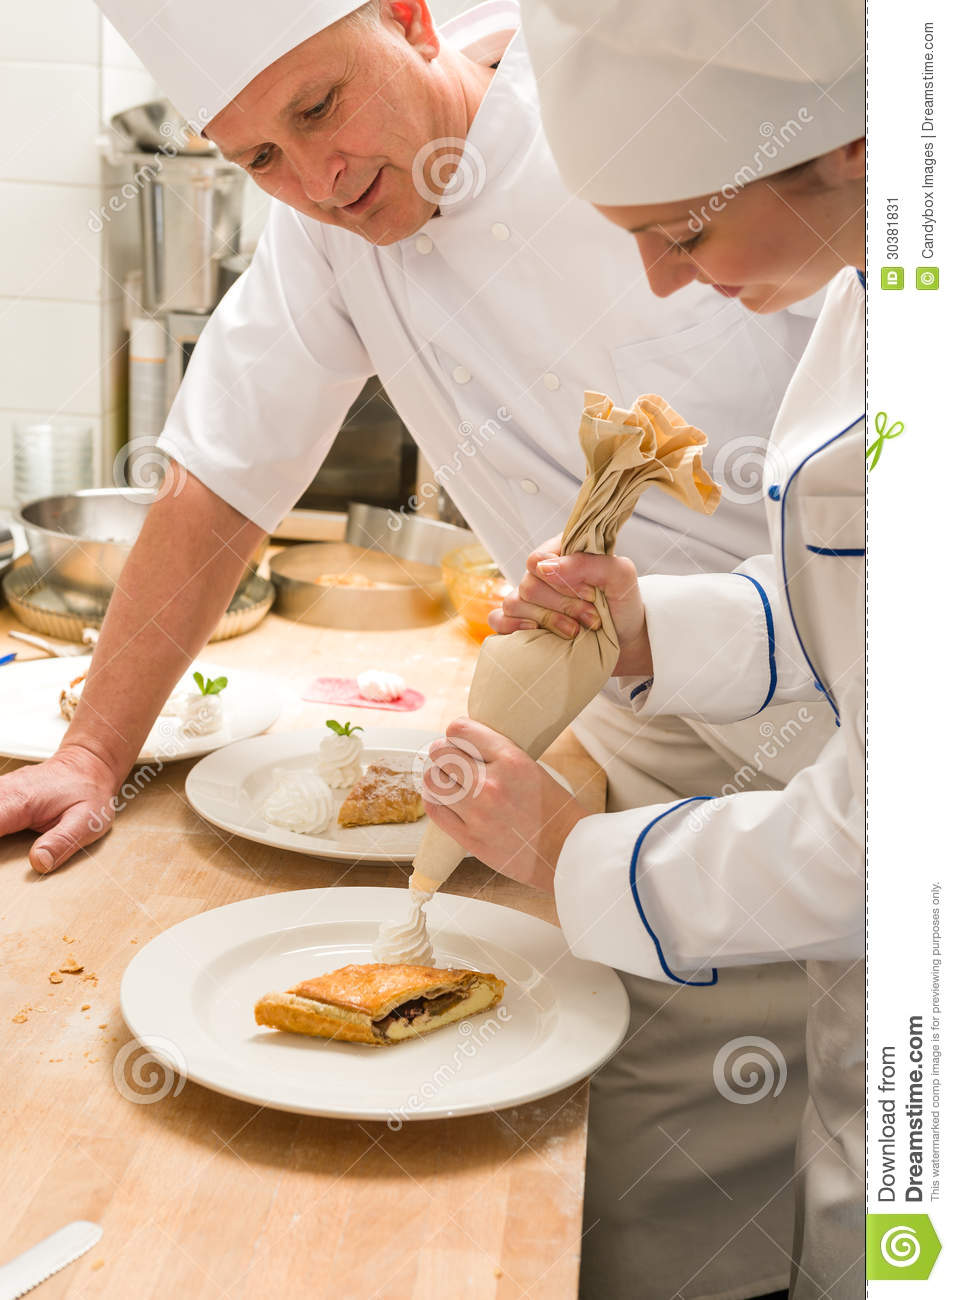 Cake Decorating Chefs : Female Chef Decorating Cake With Whipped Cream Stock Image ...